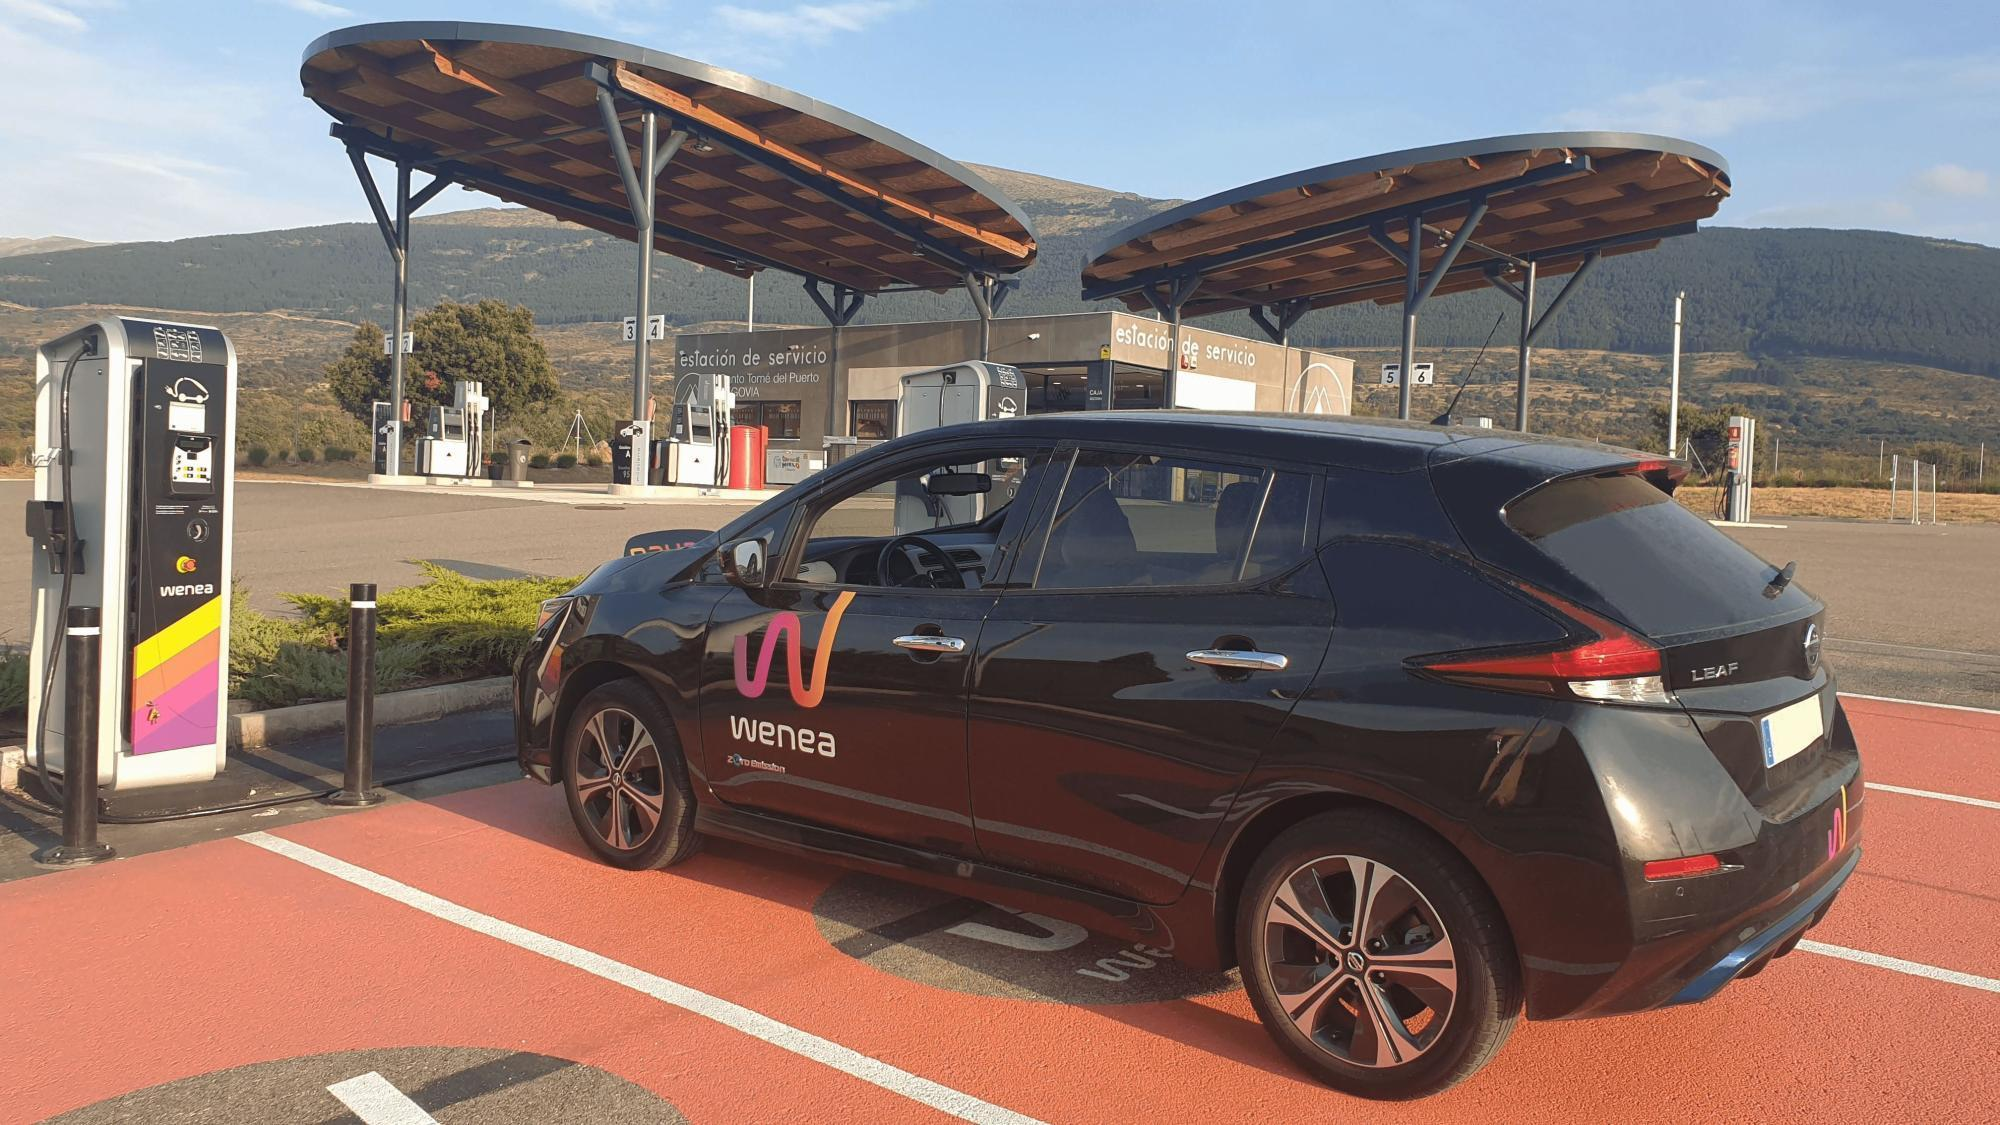 EIB invests €50 million in Wenea to deploy over 470 charging stations for electric vehicles in Spain